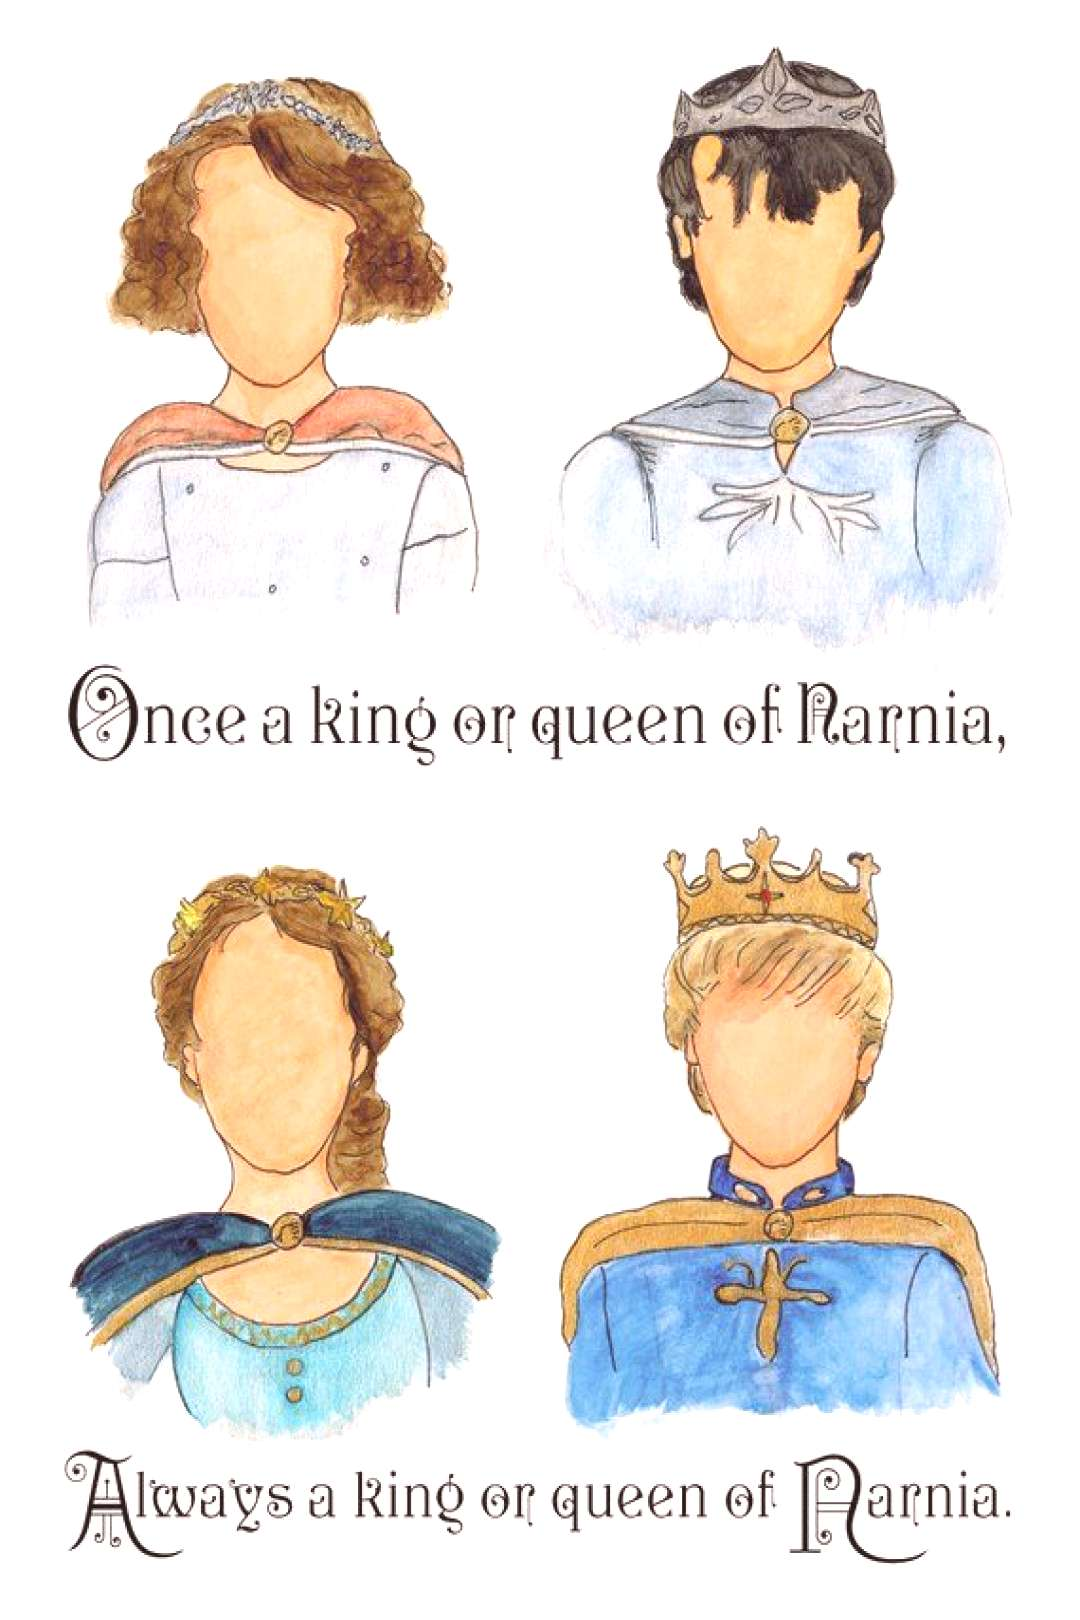 Long live Queen Lucy the Valiant! Long live Edmund the Just! Long live Queen Susan the Gentle! Long